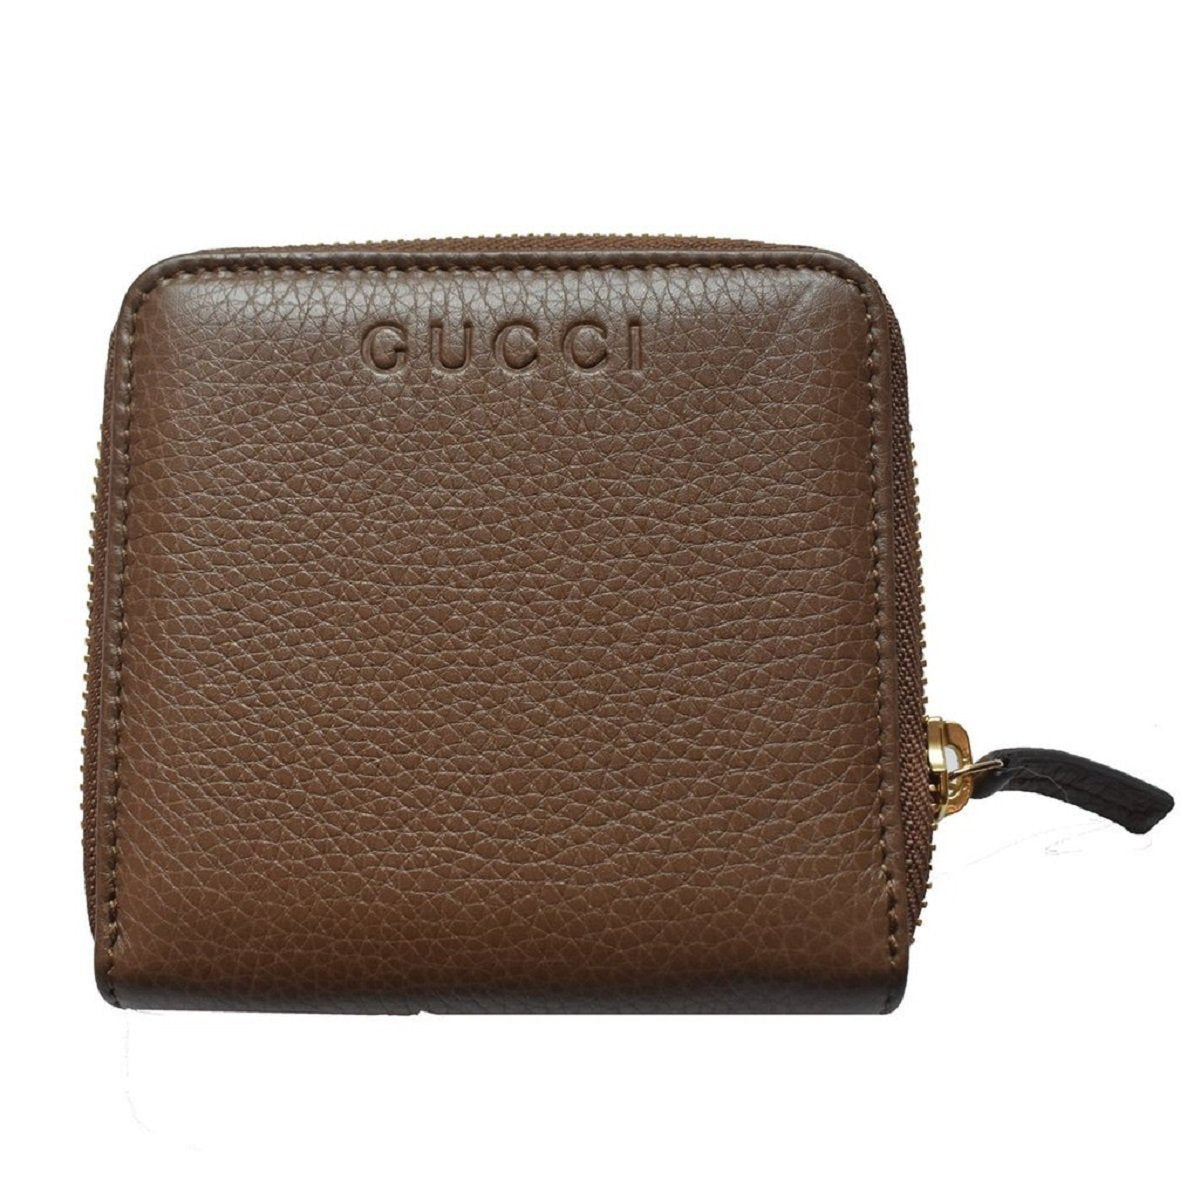 Gucci Women's Brown French Flap Zip Around Bifold Logo Wallet Coin Slot 346056